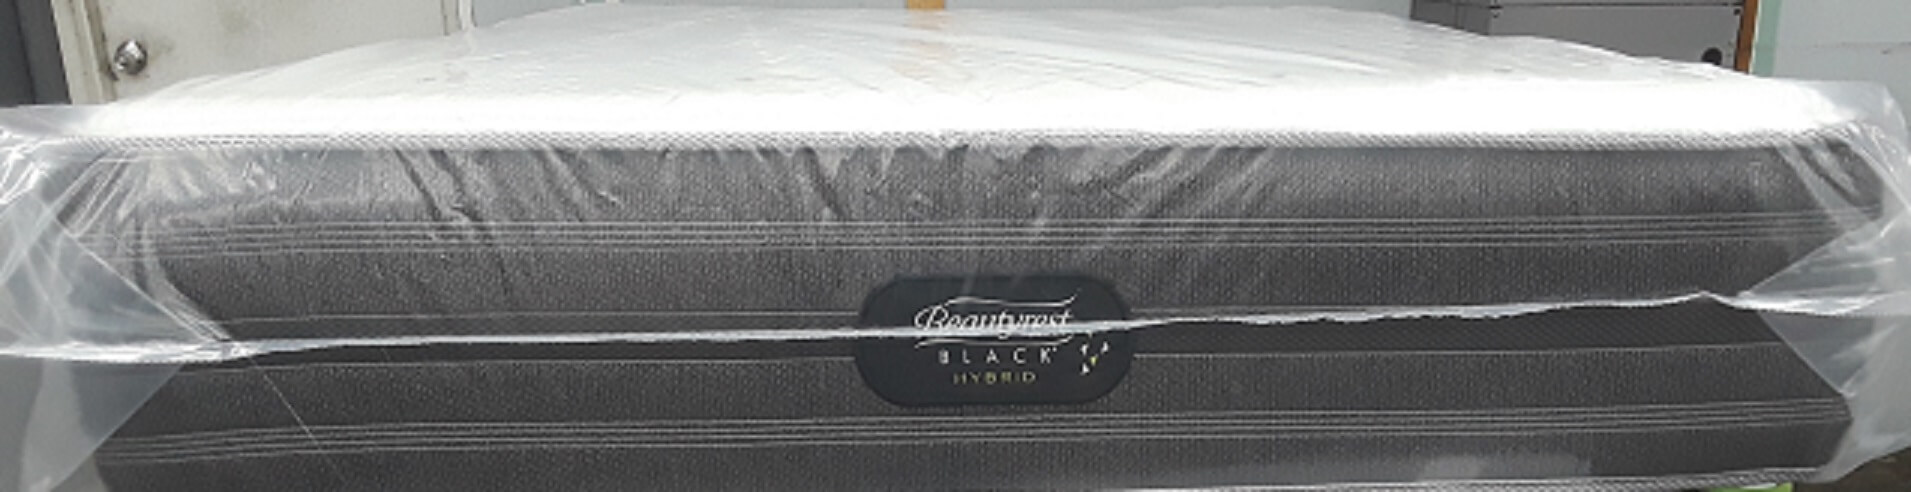 Simmons Beautyrest Black Hybrid Gladney Luxury Firm Queen Mattress